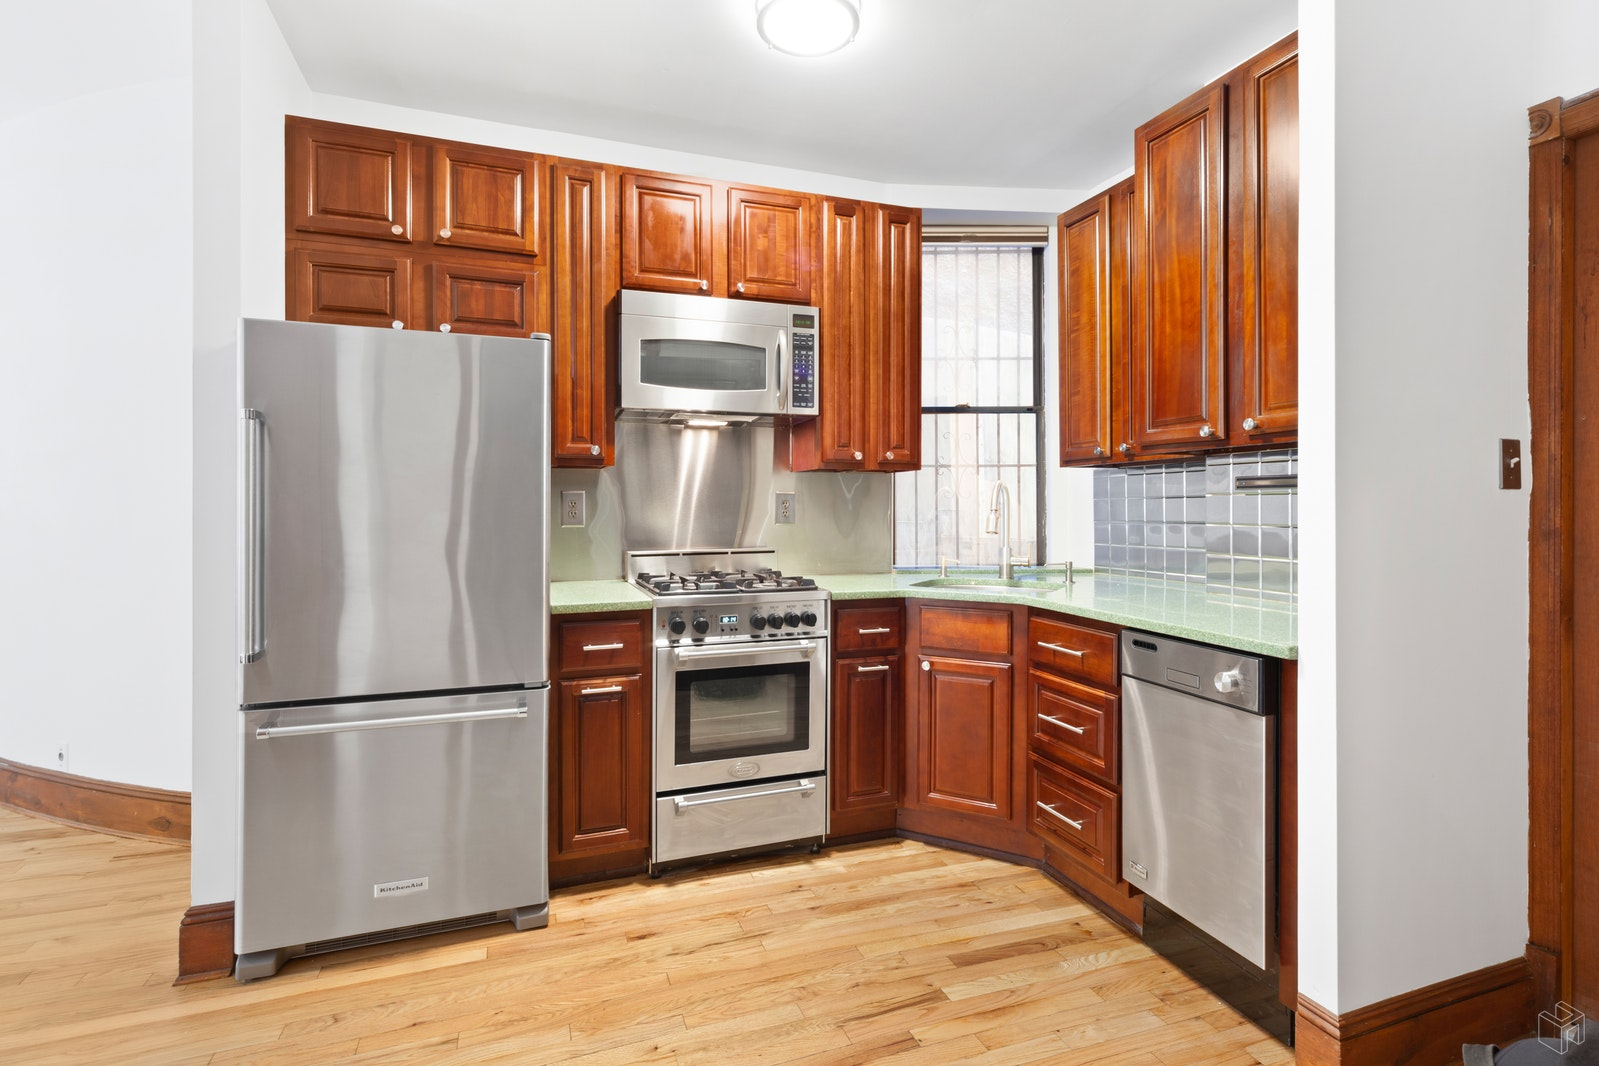 251 Pacific Street 2, Boerum Hill, Brooklyn, NY, 11201, $470,000, Sold Property, Halstead Real Estate, Photo 3